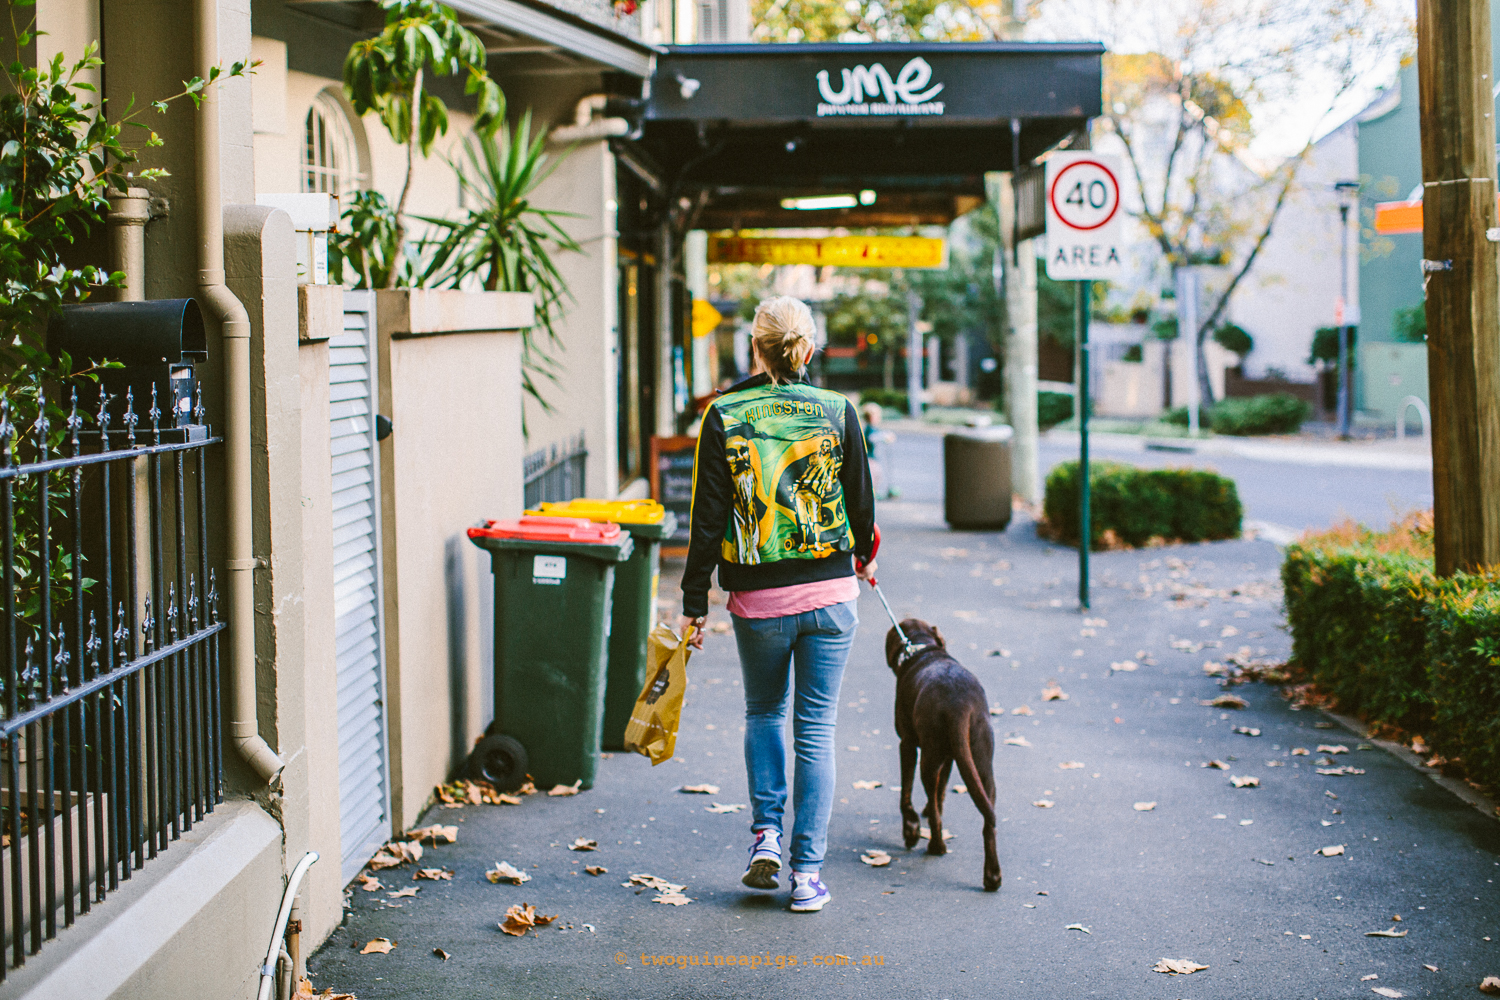 twoguineapigs_photography_jkblackwell_street_dogs_surry_hills_evening_strolls_1500-1.jpg